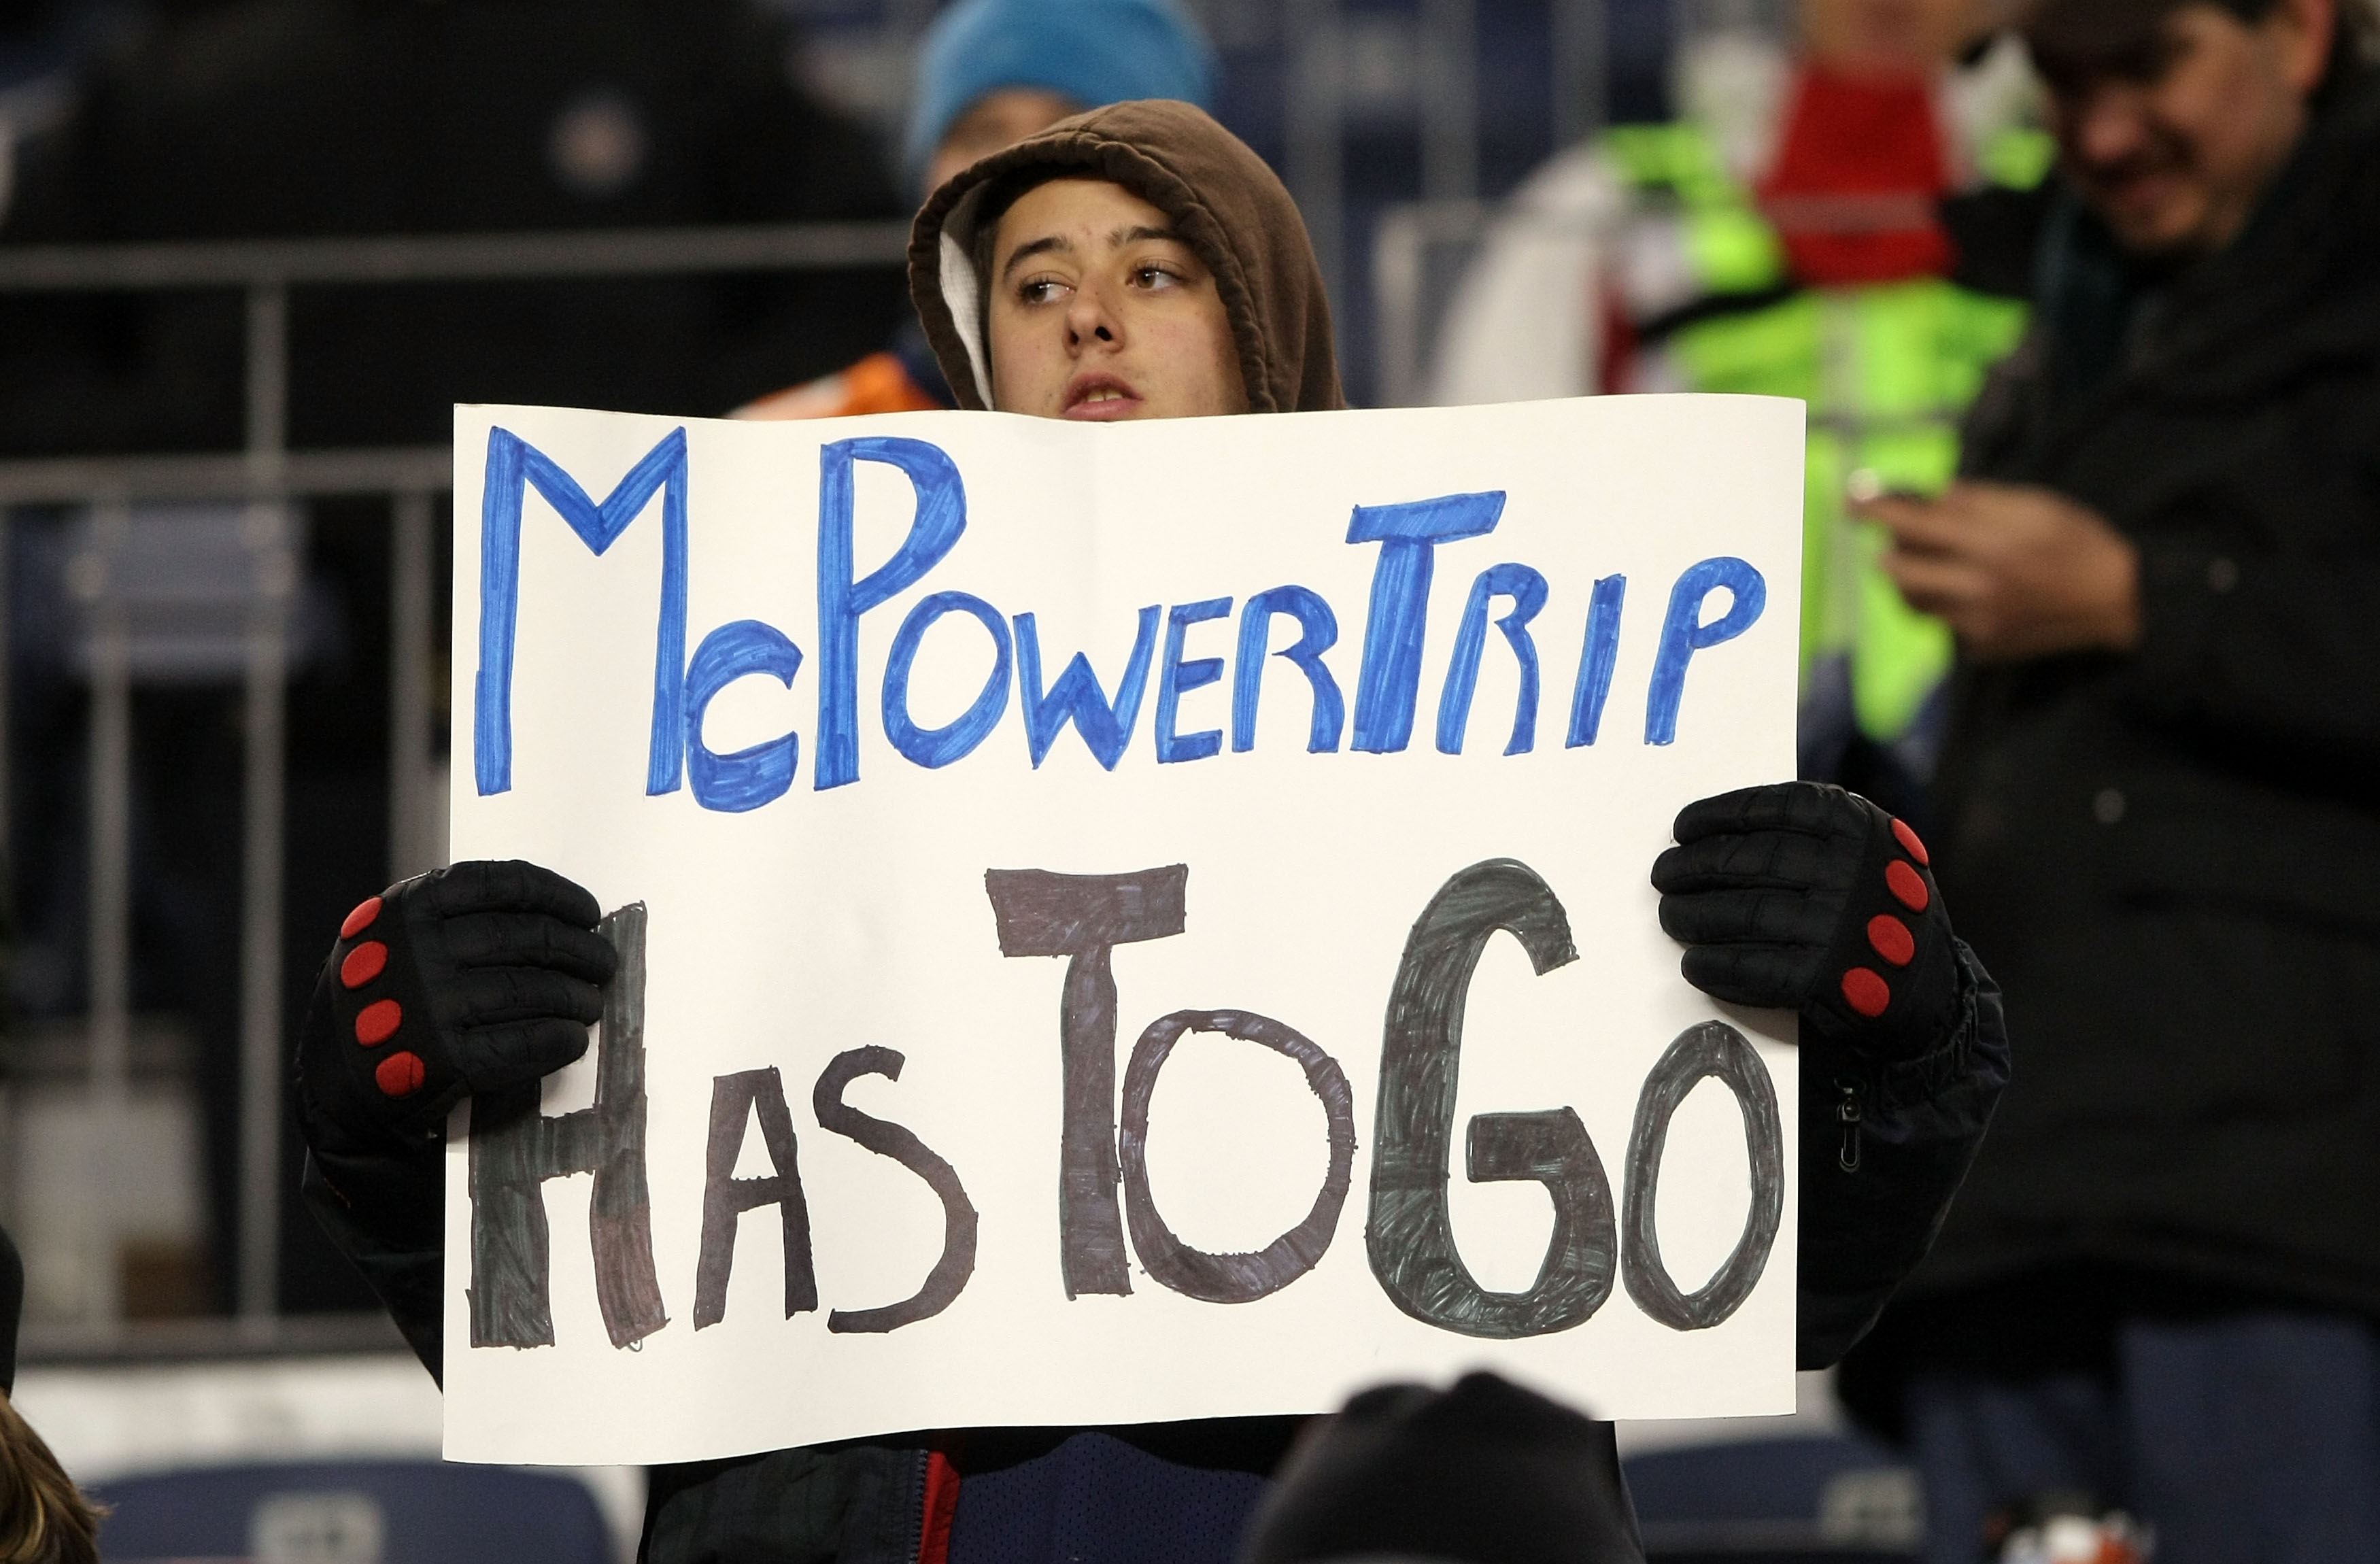 DENVER - JANUARY 03: A Broncos fan holds a sign expressing his sentiments about head coach Josh McDaniels of the Denver Broncos as the Broncos were defeated by the Kansas City Chiefs during NFL action at Invesco Field at Mile High on January 3, 2010 in De